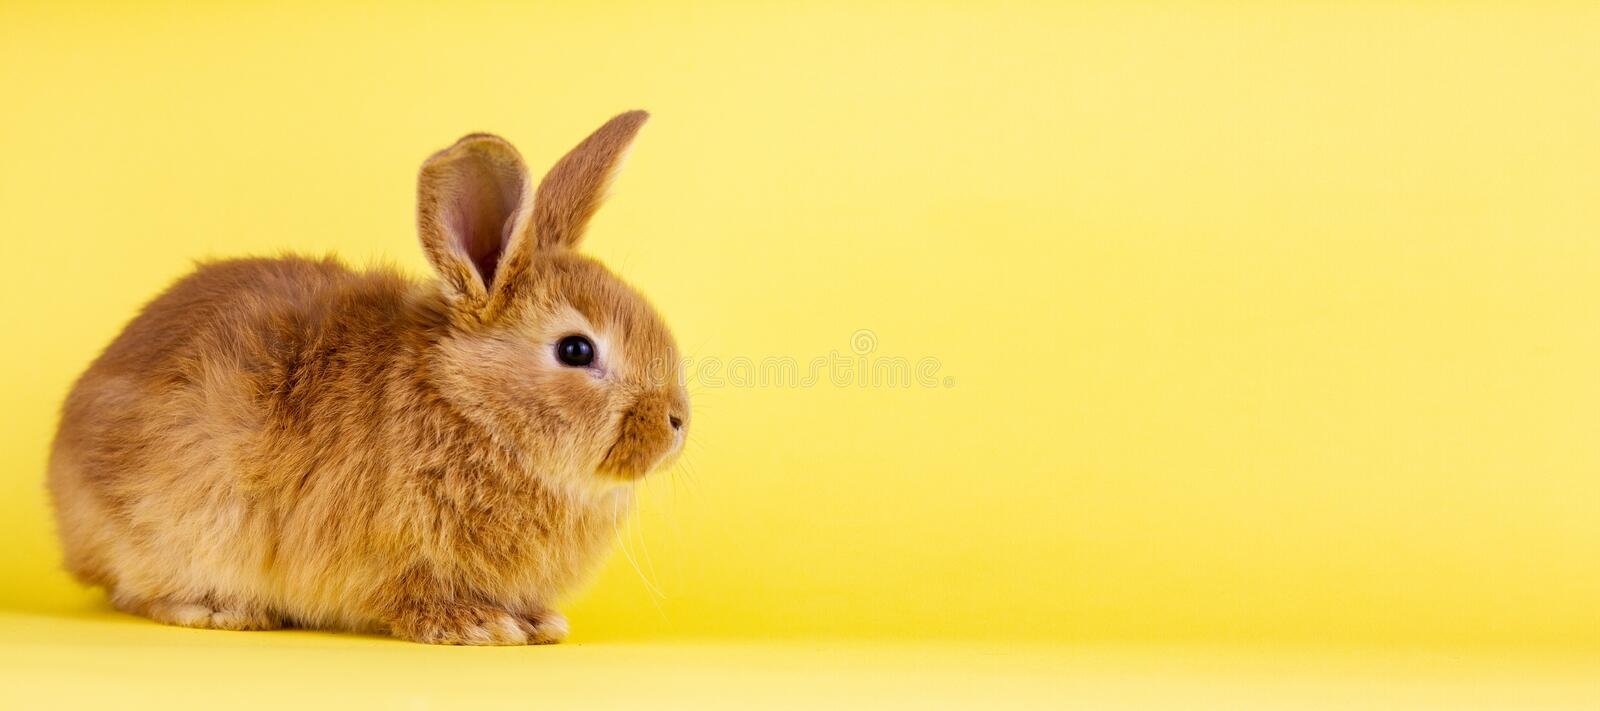 Little easter lively rabbit on a yellow background. Red fluffy rabbit on a yellow background, banner picture. Easter Bunny royalty free stock photos